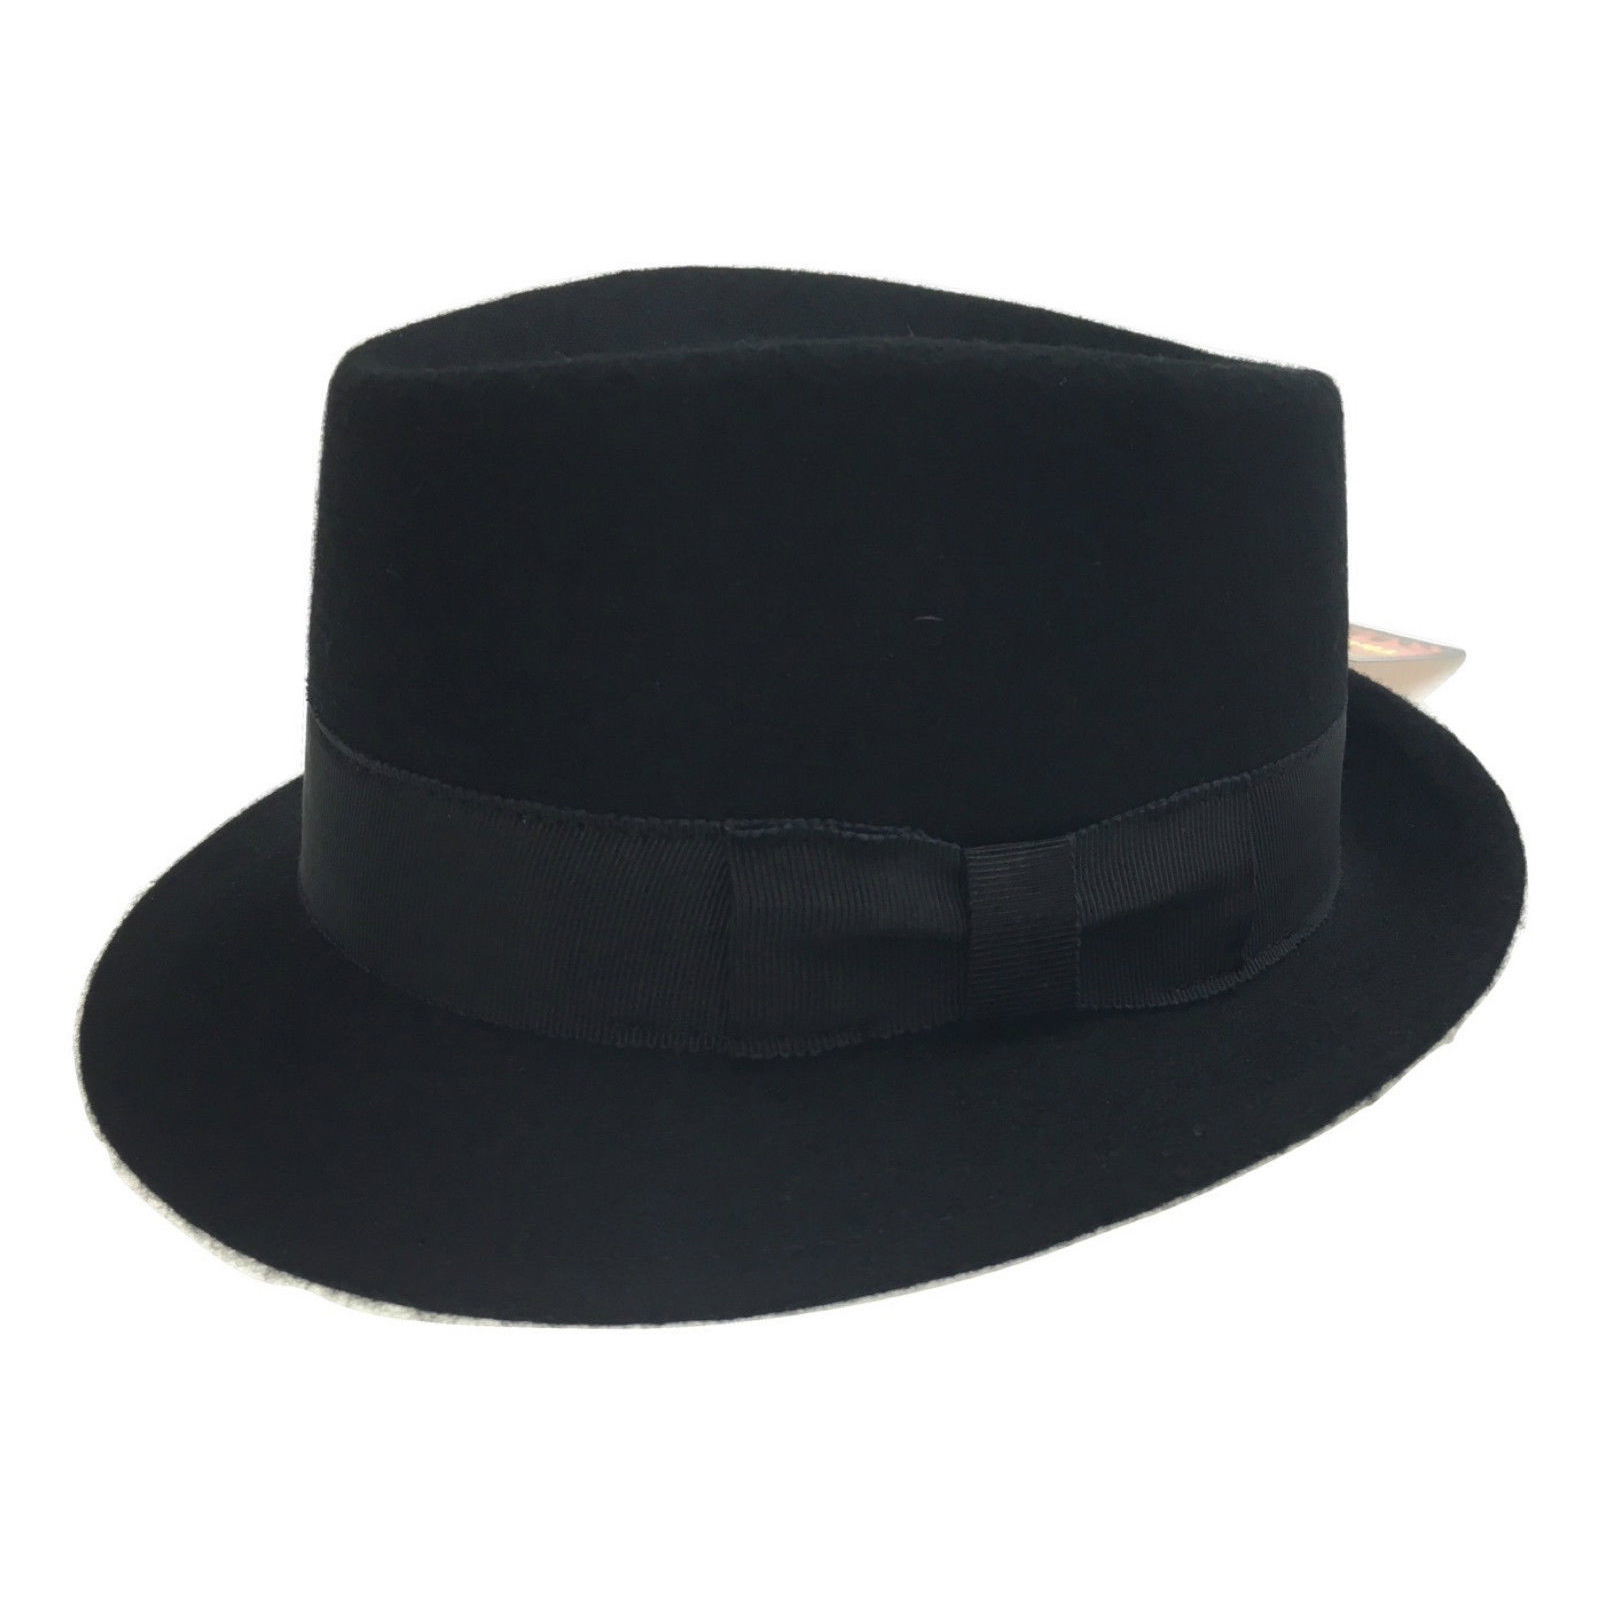 d8206c42ada5f0 The Bradley Porkpie 100% Genuine Wool Felt Hat Fedora Trilby Formal ...